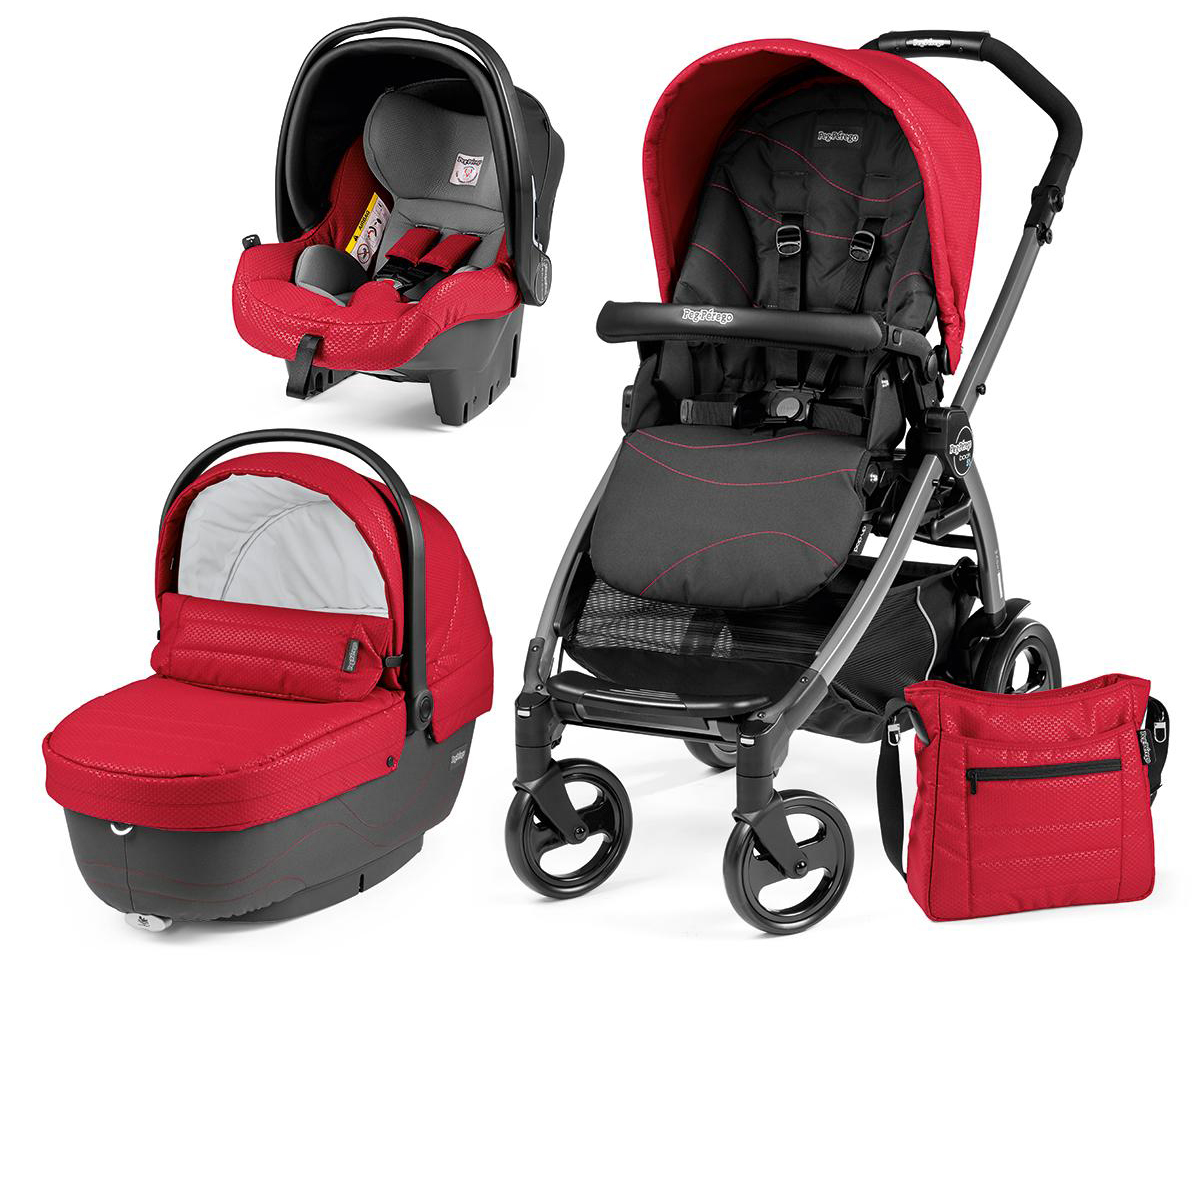 hr_2017_09_01_peg_perego_bloom_red.jpg